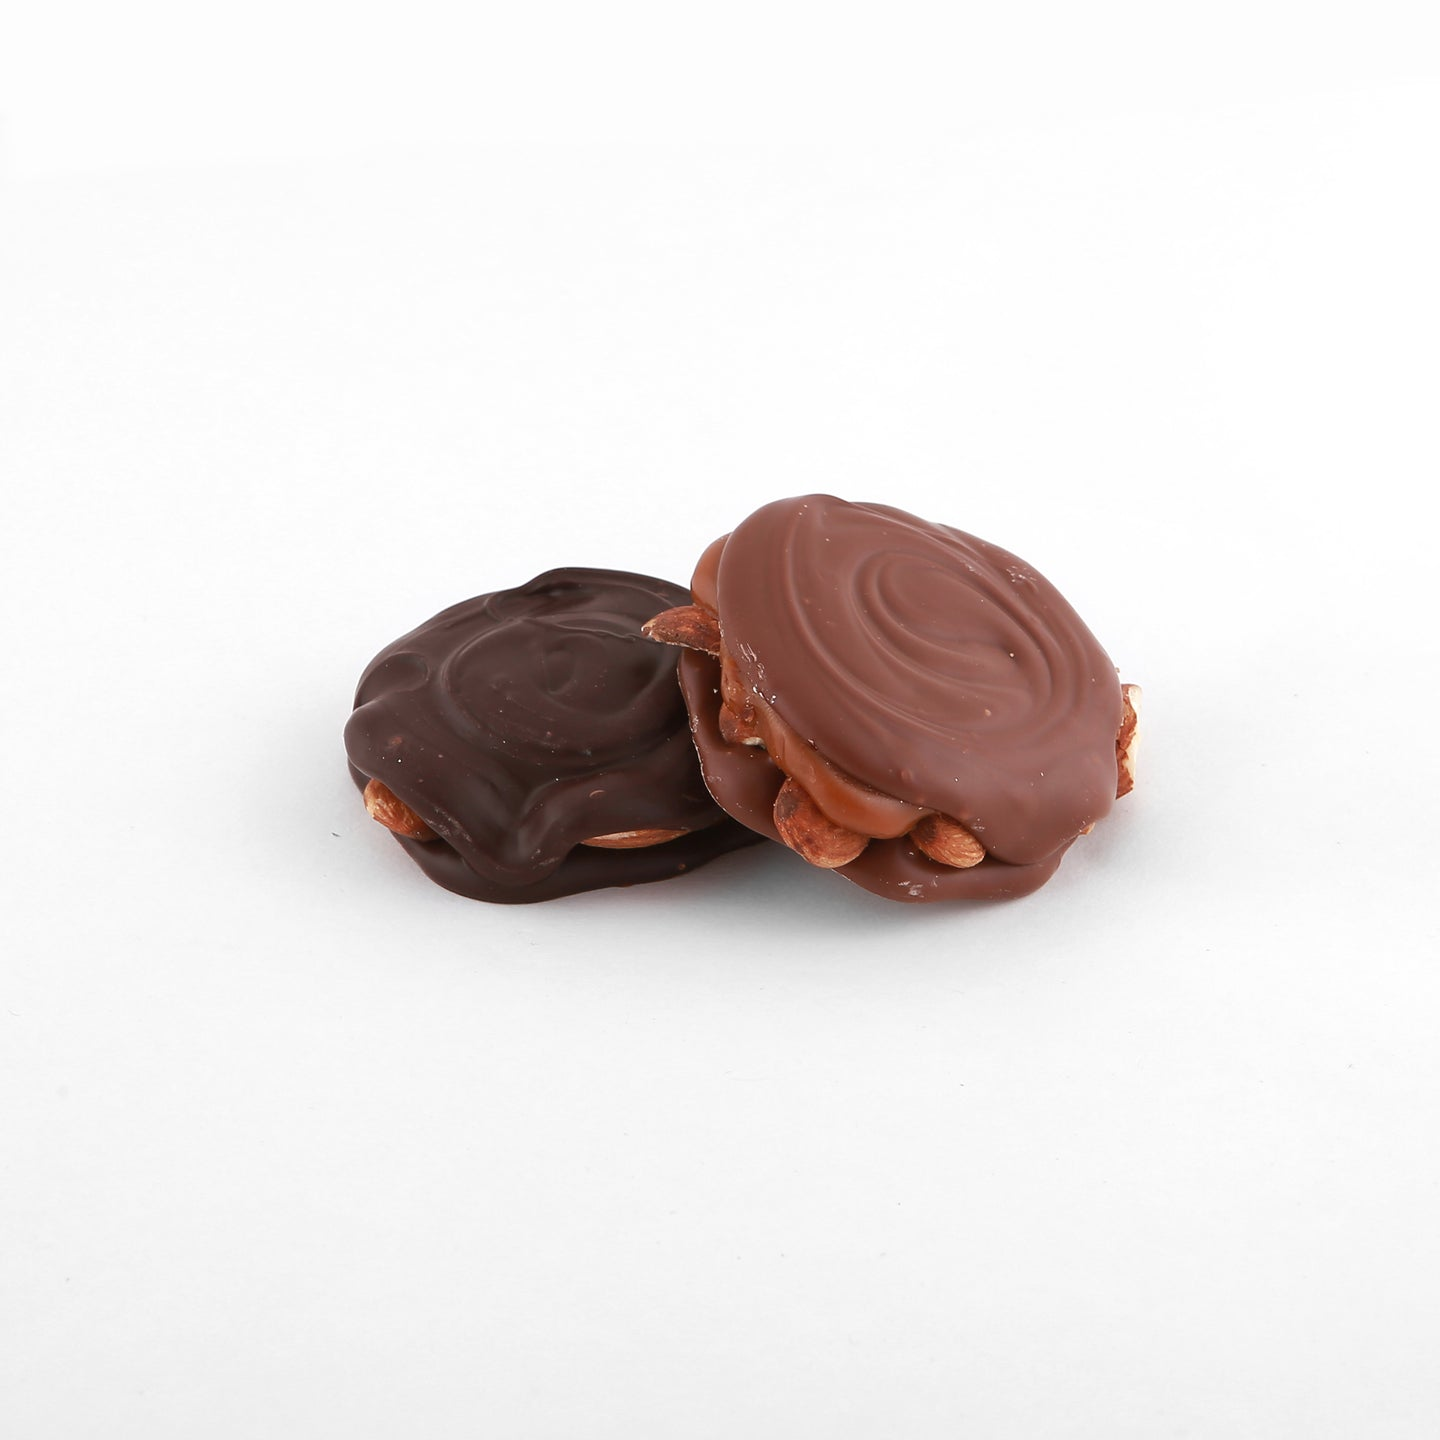 caramel almond turtle coated in chocolate